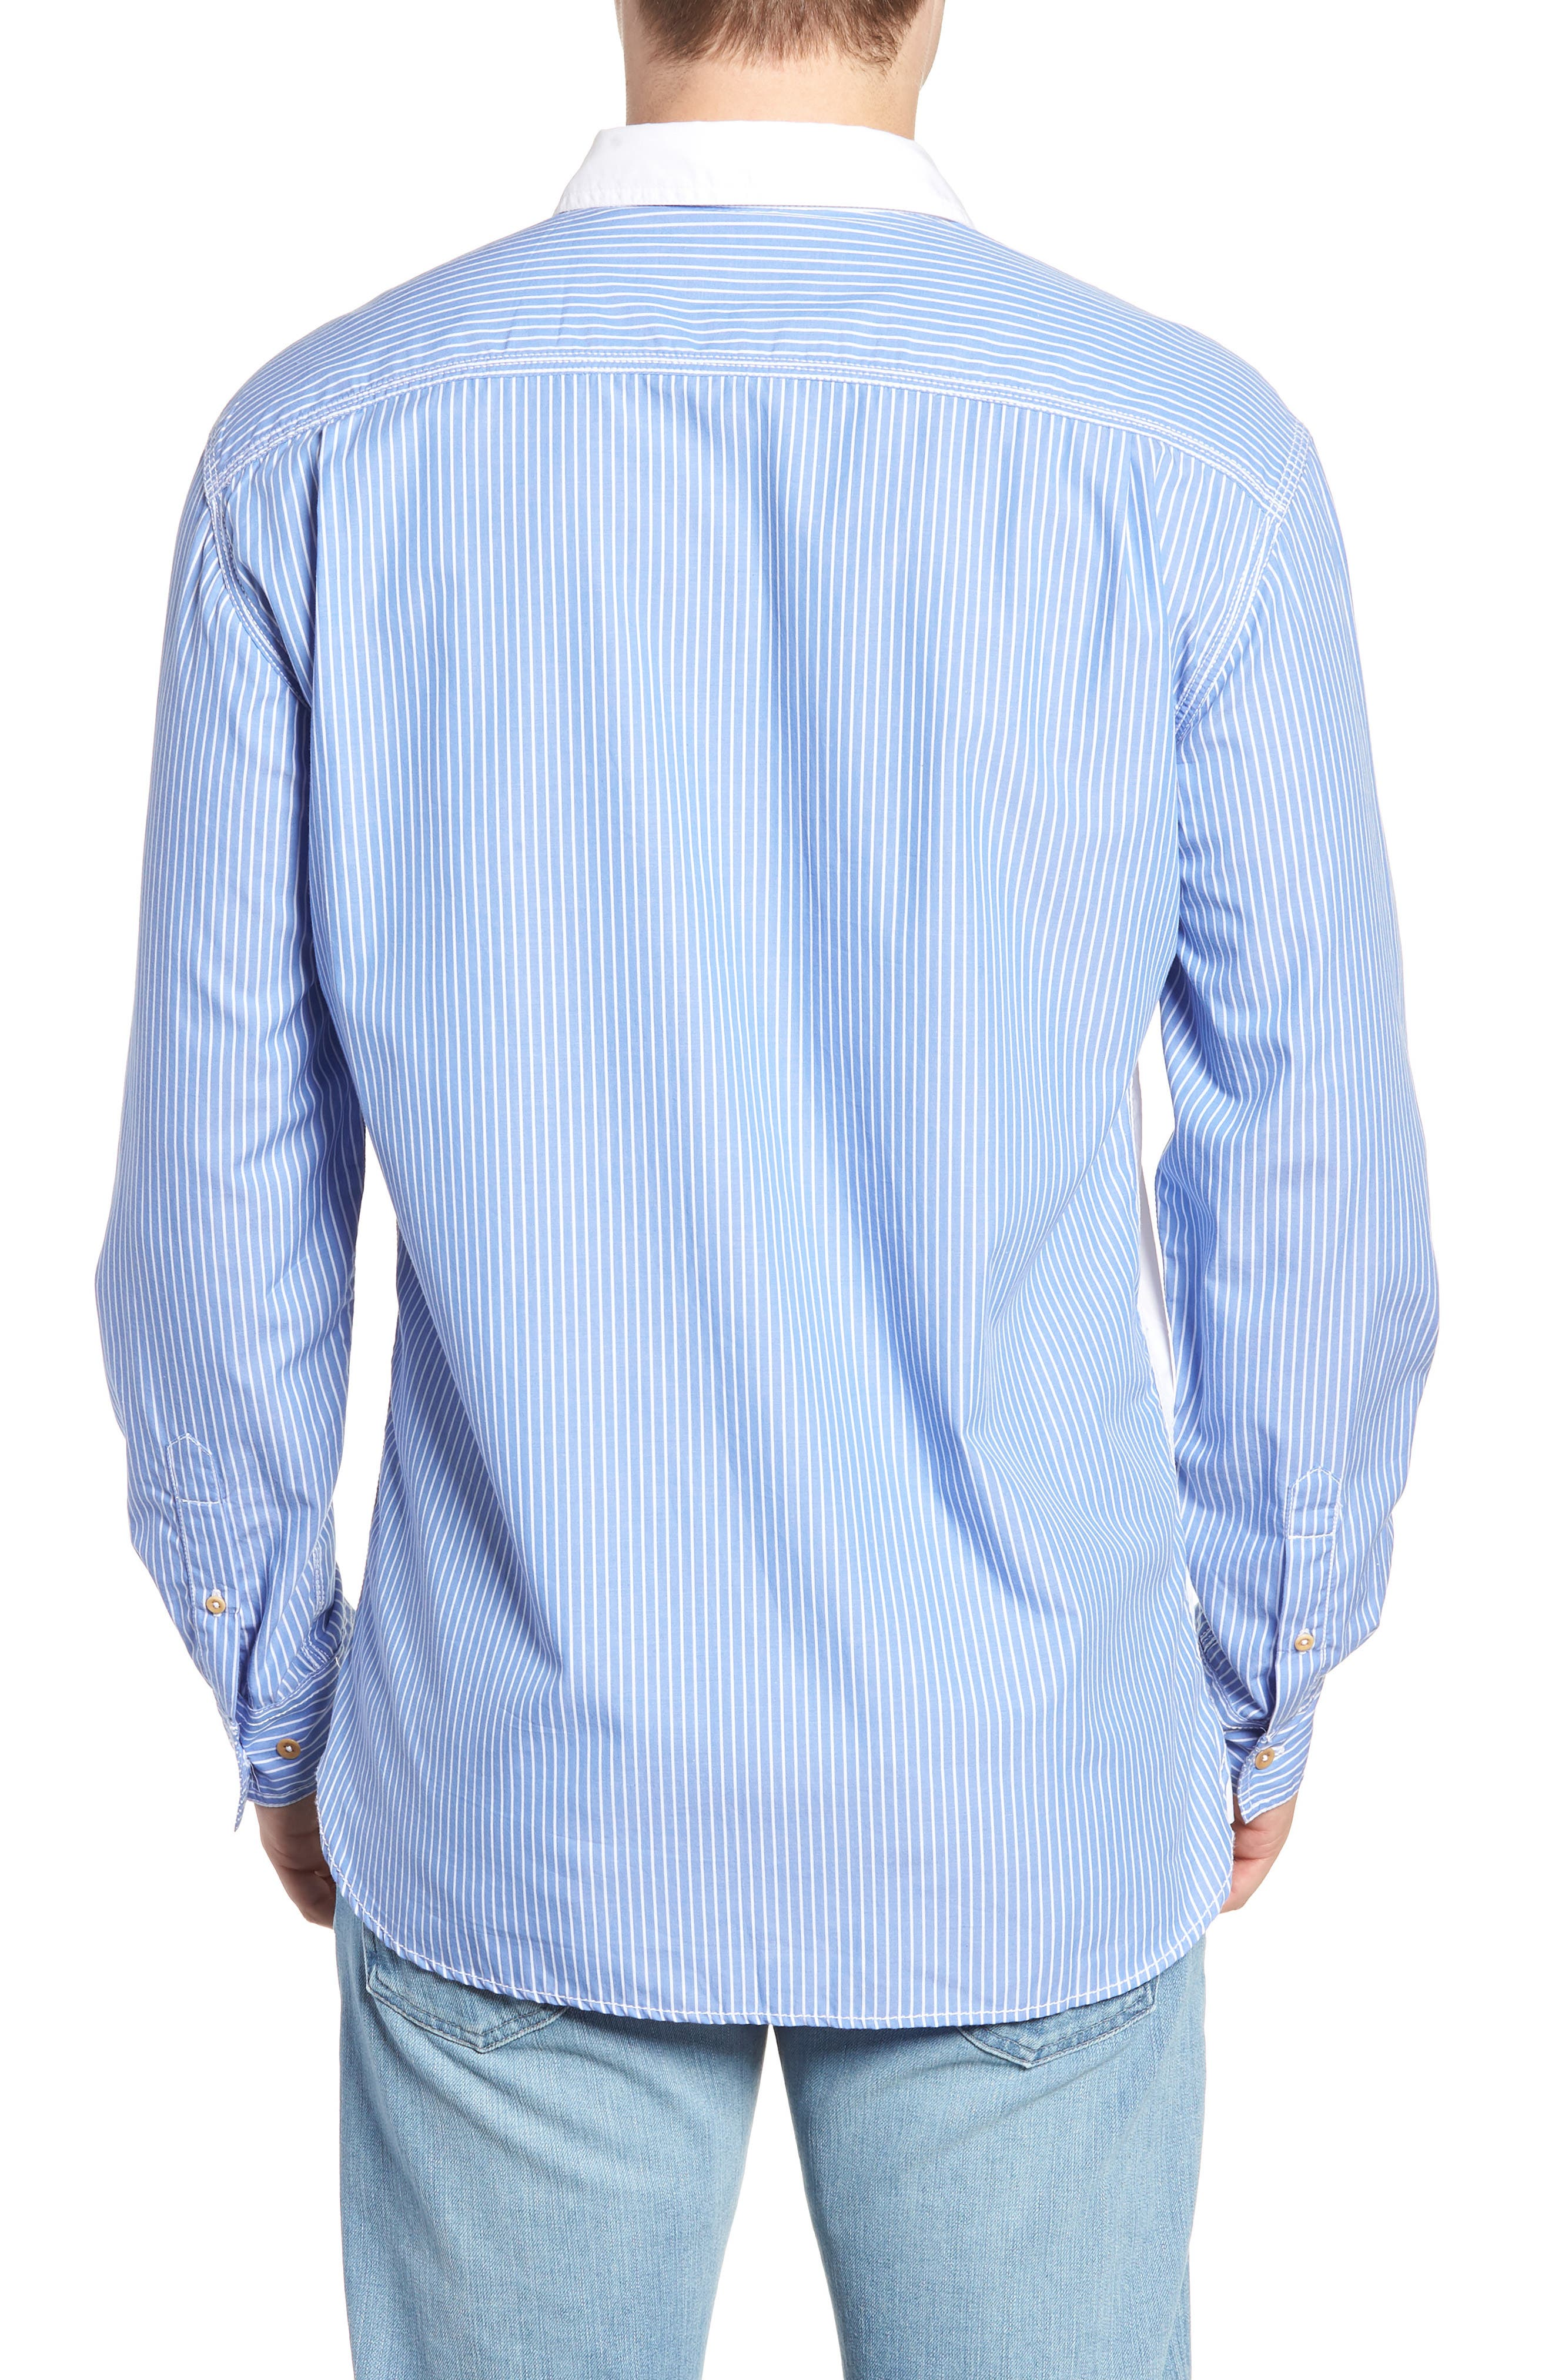 Stripe Hybrid Sport Shirt,                             Alternate thumbnail 2, color,                             WHITE RICH BLUE